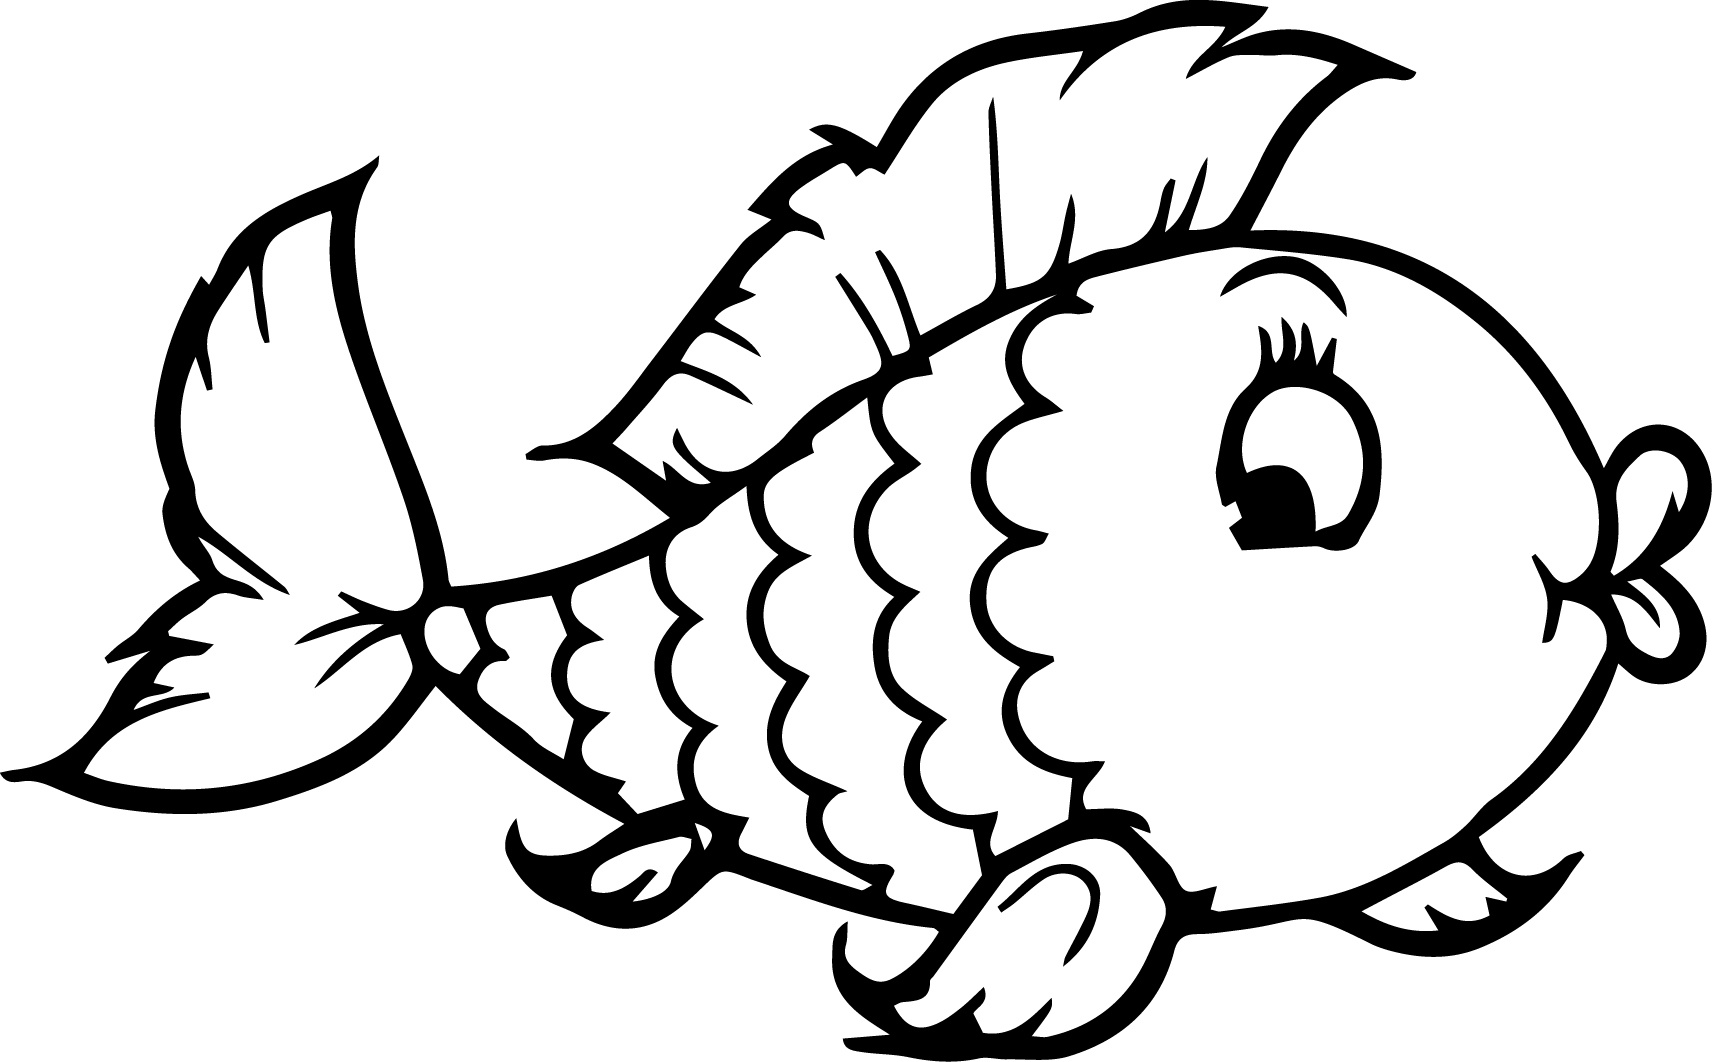 easy fish coloring pages printable fish coloring pages at getdrawings free download easy pages fish coloring